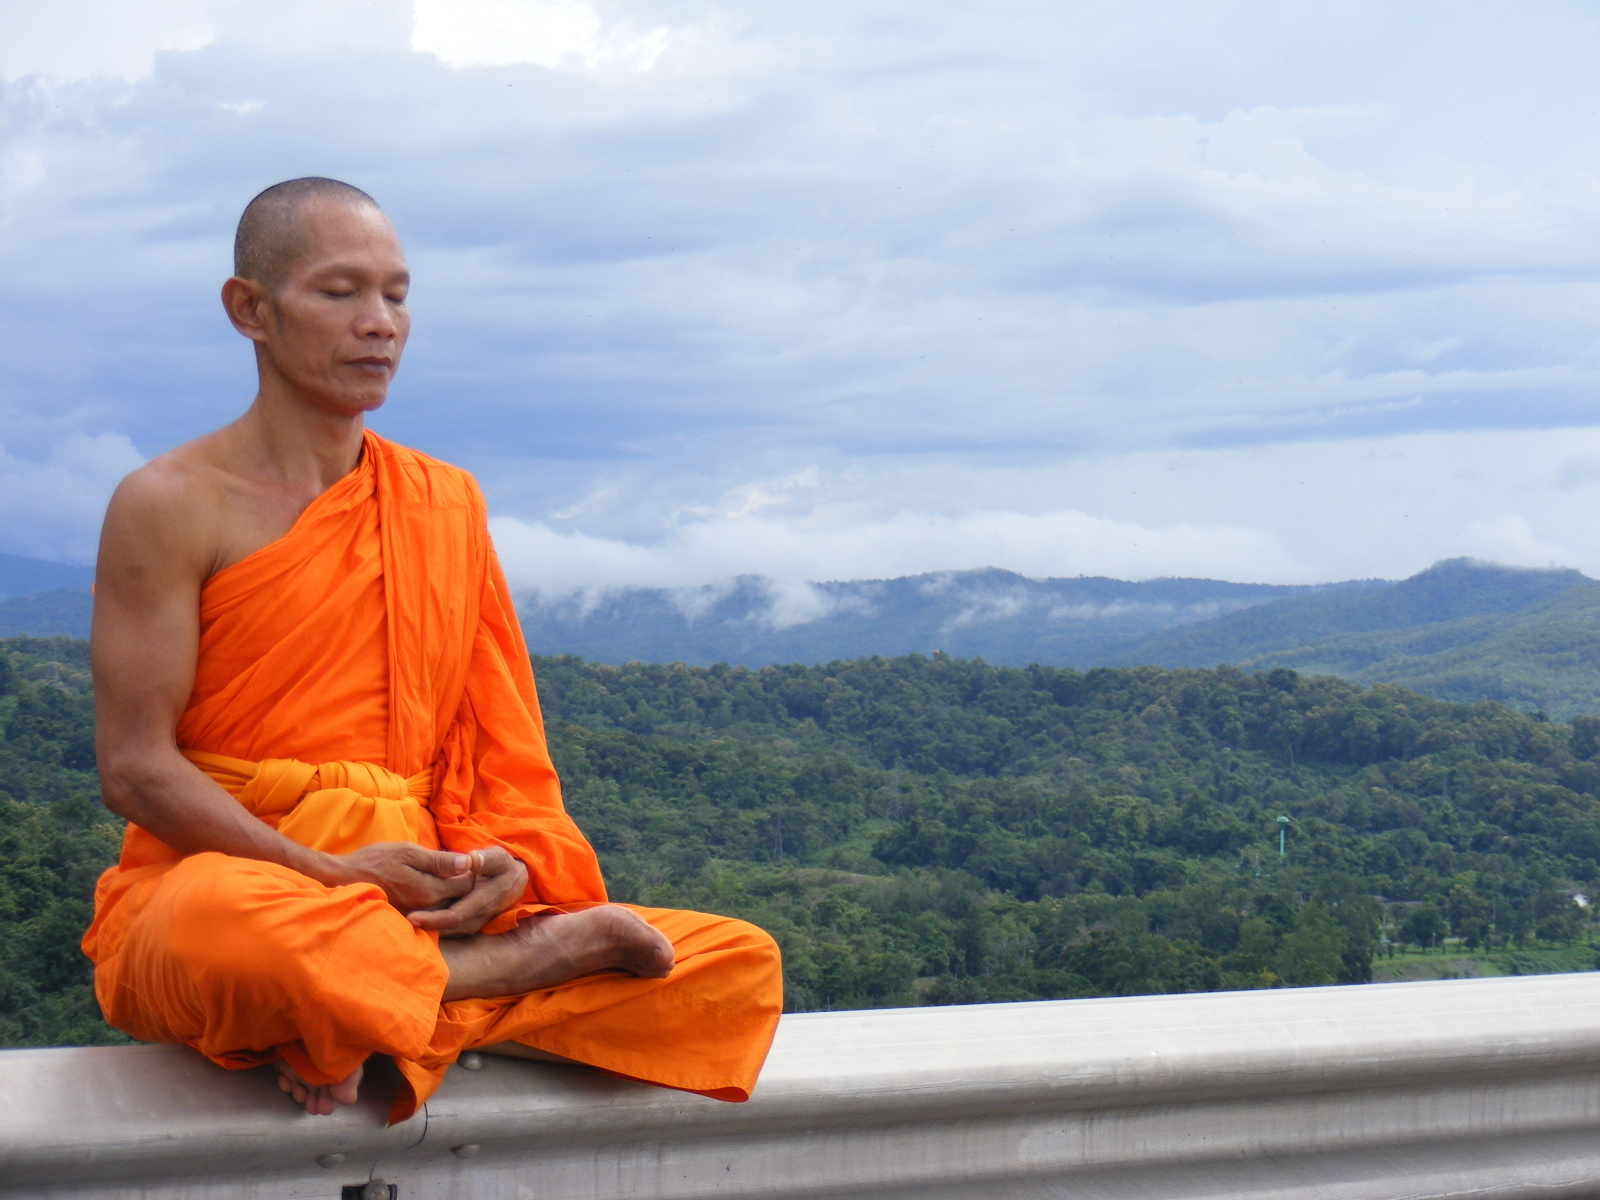 On Meditation: Why Meditate? Mindfulness Through Meditation